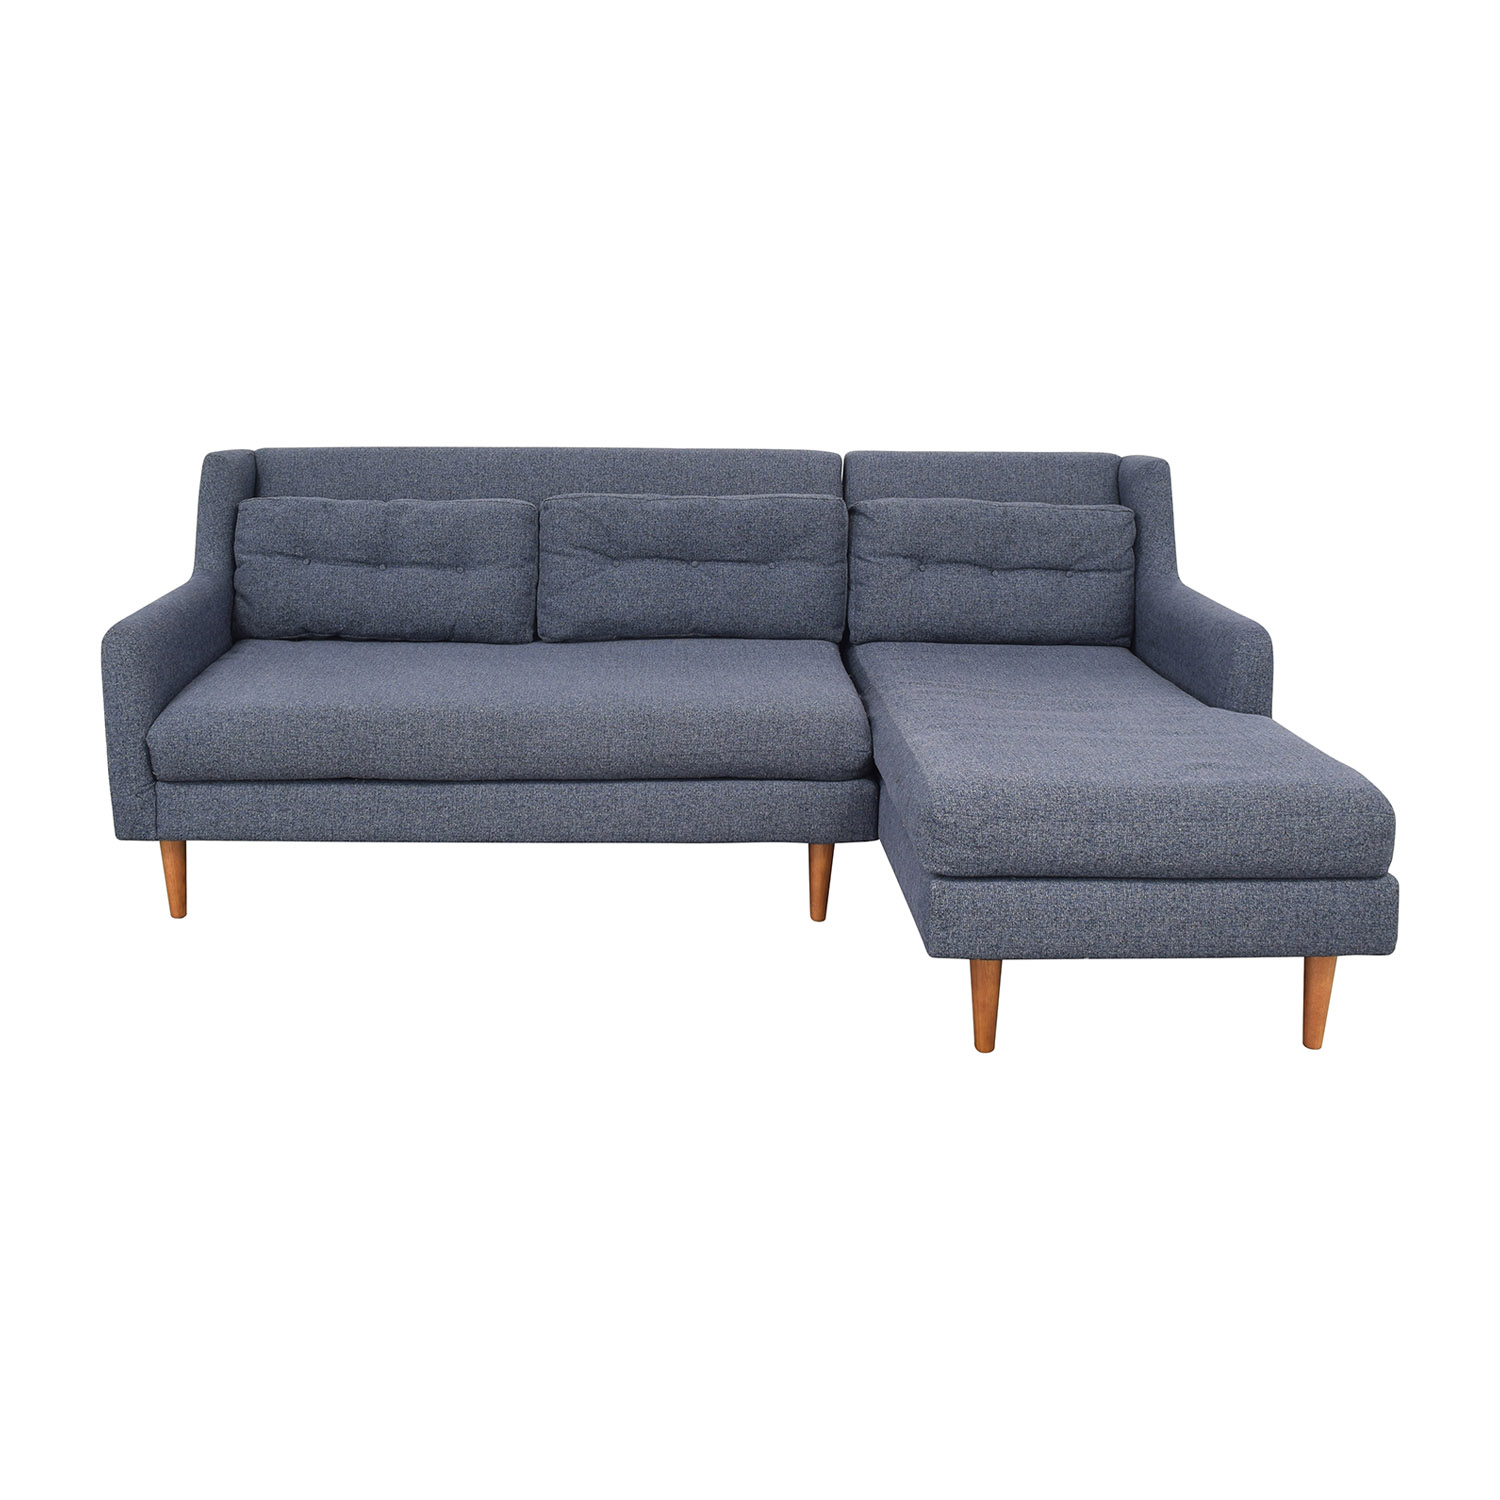 West Elm West Elm Crosby Mid-Century 2-Piece Chaise Sectional for sale